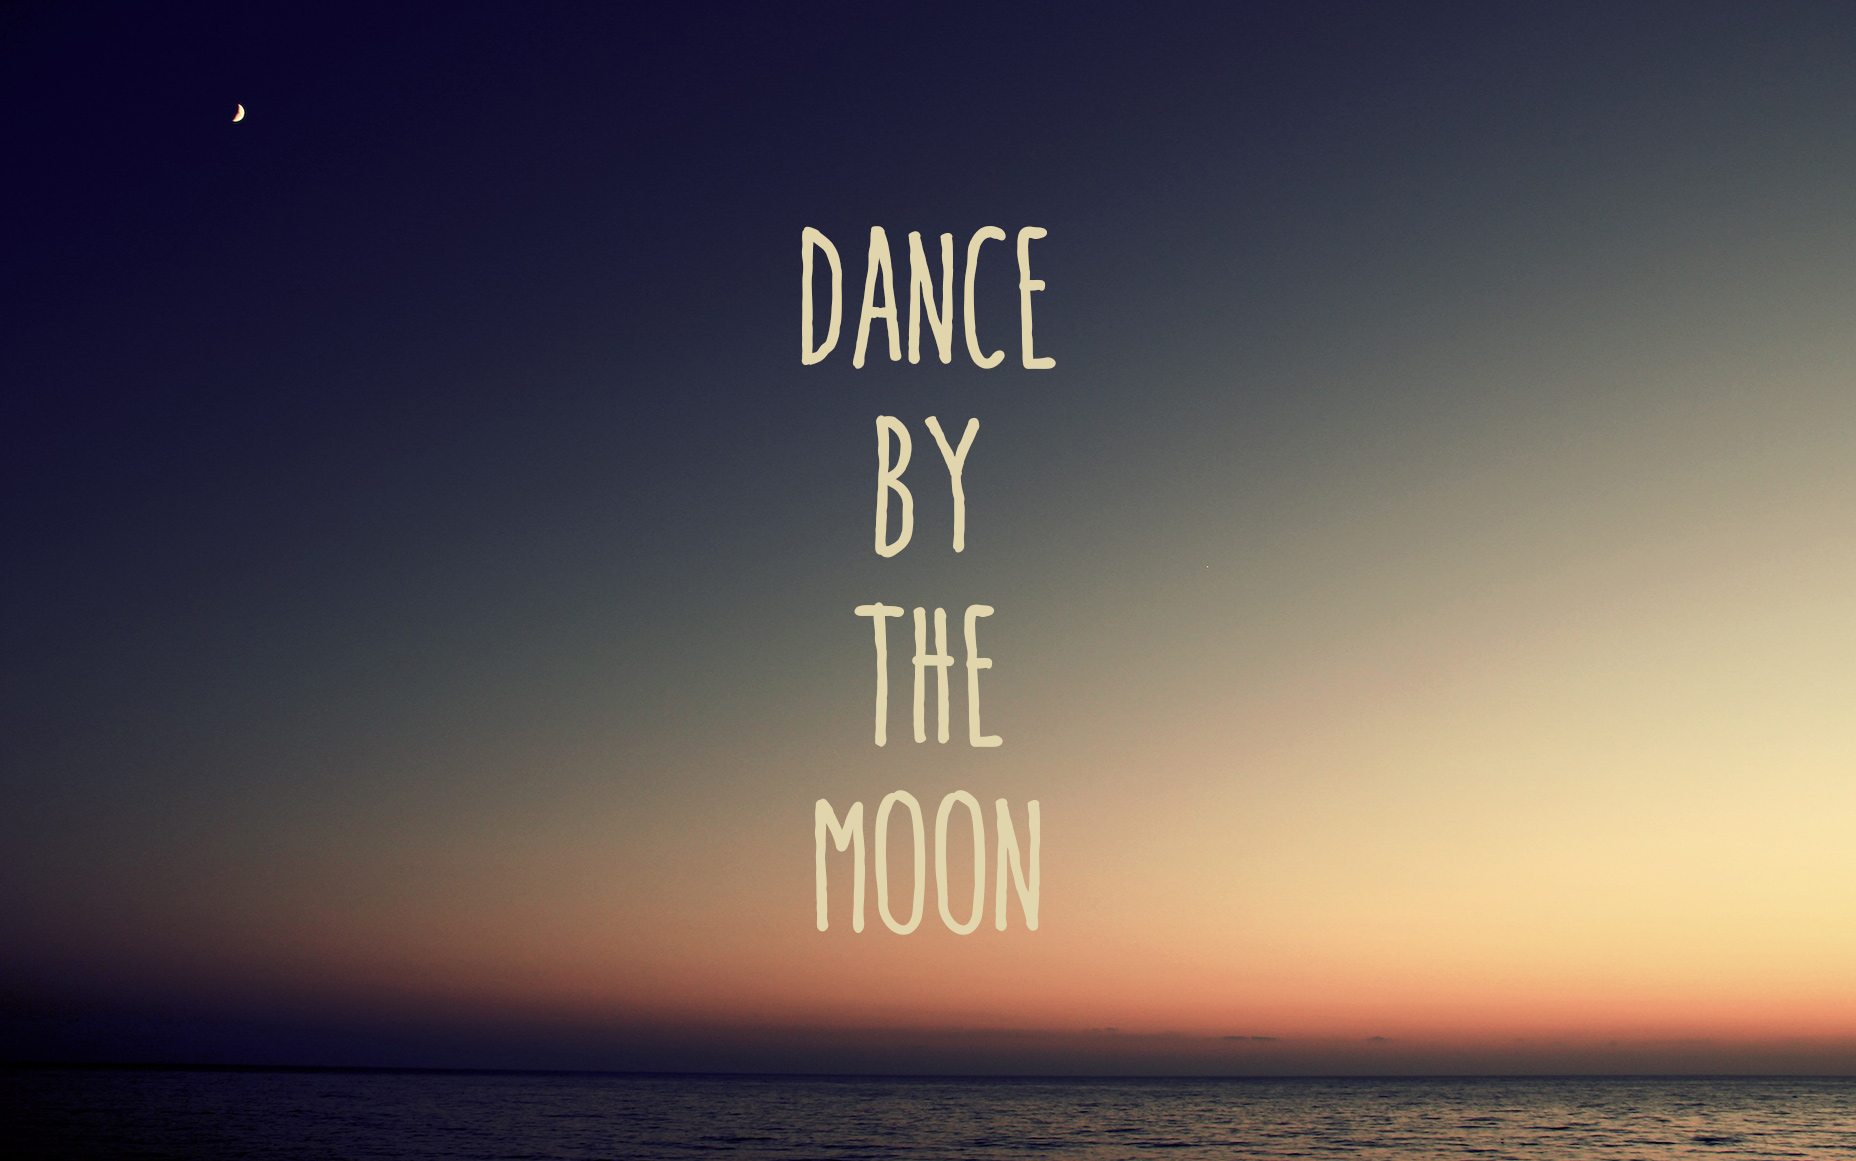 First Love Wallpapers Quotes Made On Monday Dance By The Moon A Sunshine Mission